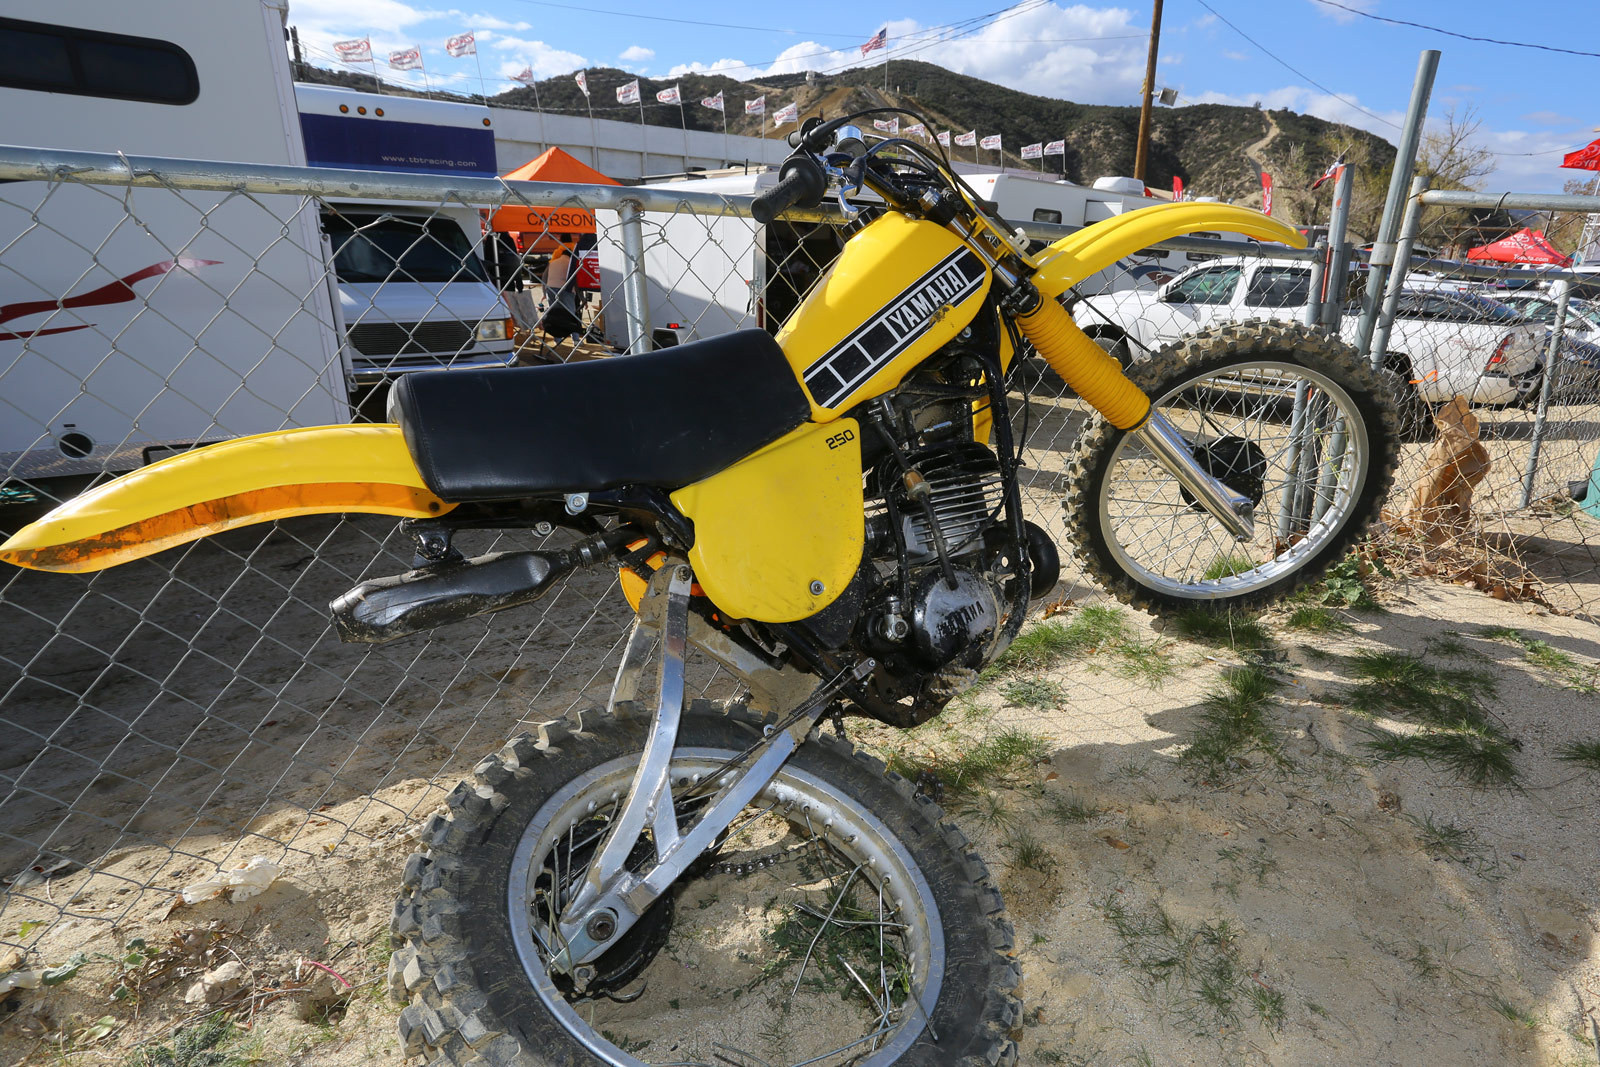 Vintage bikes - Friday and Saturday at Red Bull Day In The Dirt 18 - Motocross Pictures - Vital MX